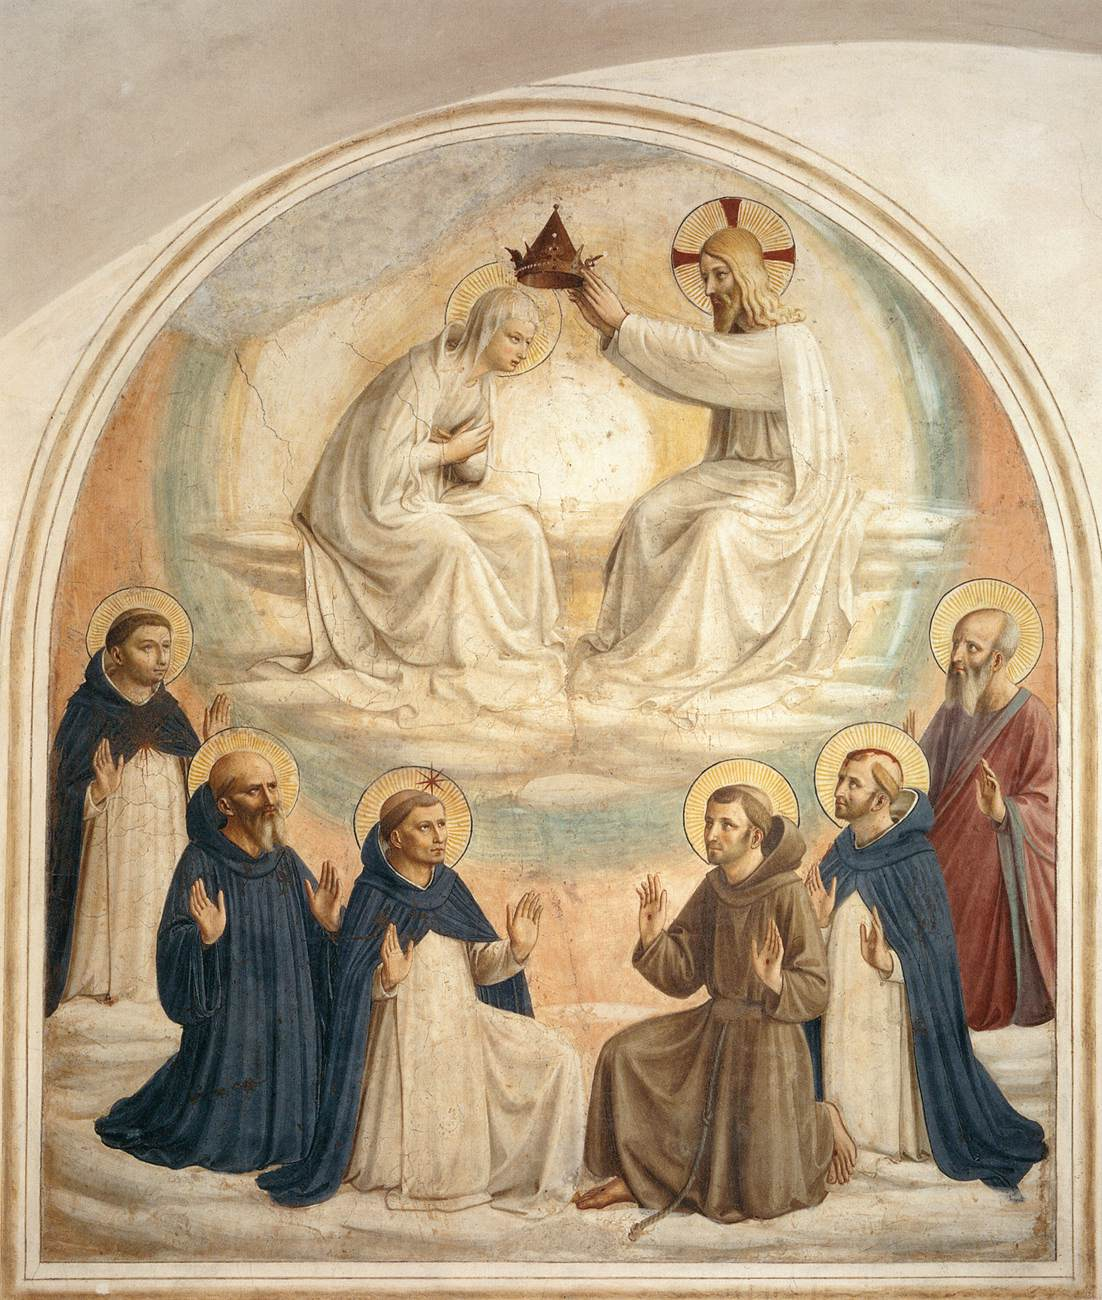 File:Fra Angelico - Coronation of the Virgin (Cell 9) - WGA00543.jpg - Wikime...